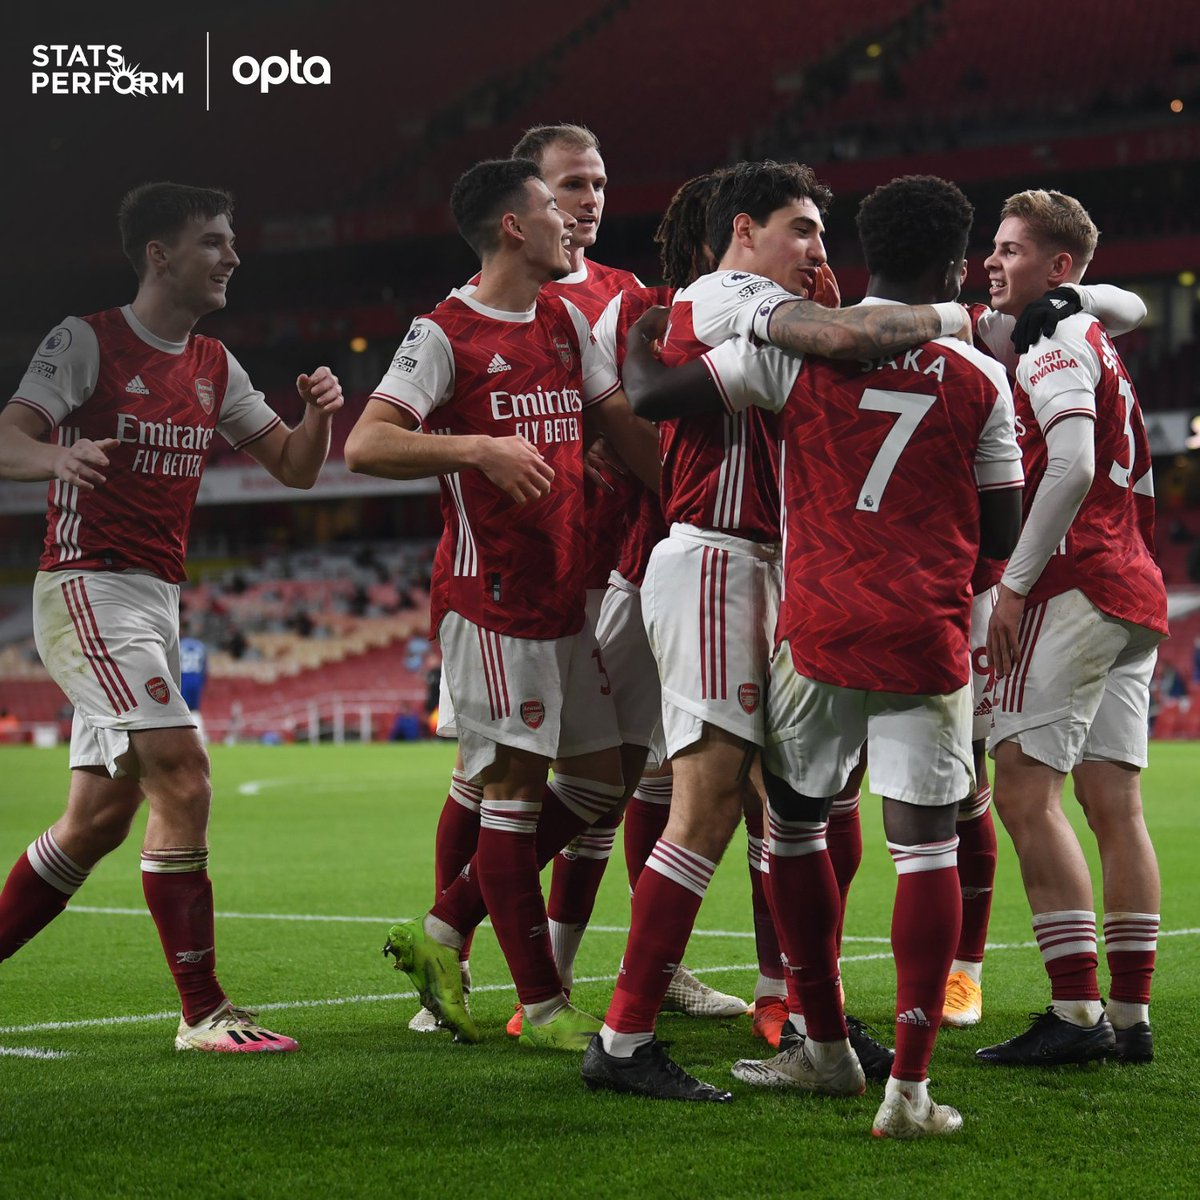 9 - Arsenal have won more points in Premier League London derbies this season than any of the other five sides from the capital (9); the Gunners have won three of their four London derby matches so far, already one more than they did in the whole of 2019-20. Turf. #ARSCRY